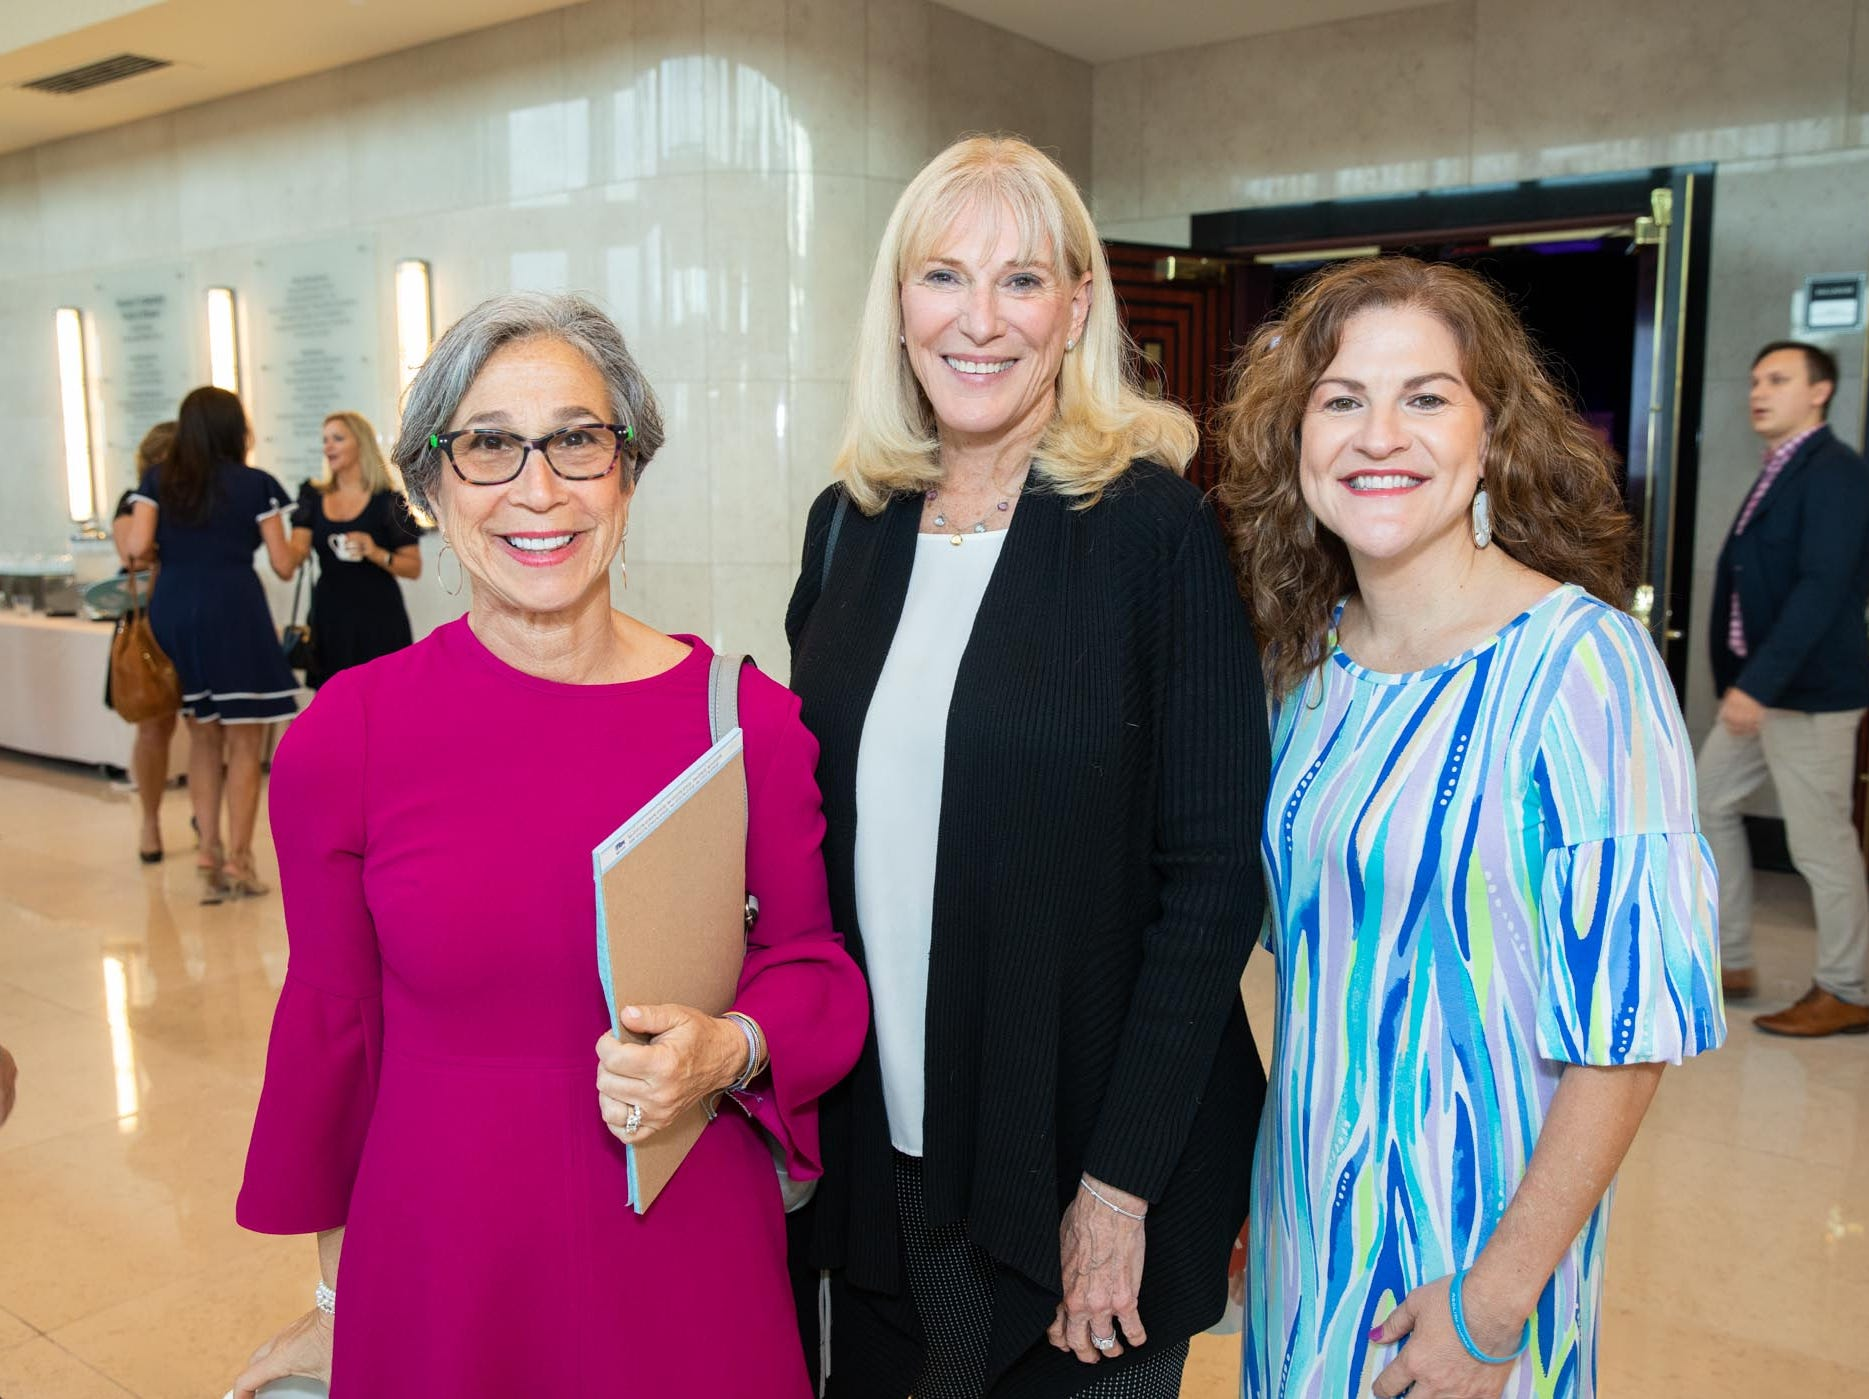 Sheryl Paul, left, Donna Linton and Joanne Zarro attend Catch the Wave of Hope's breakfast to raise money and awareness about human sex trafficking.